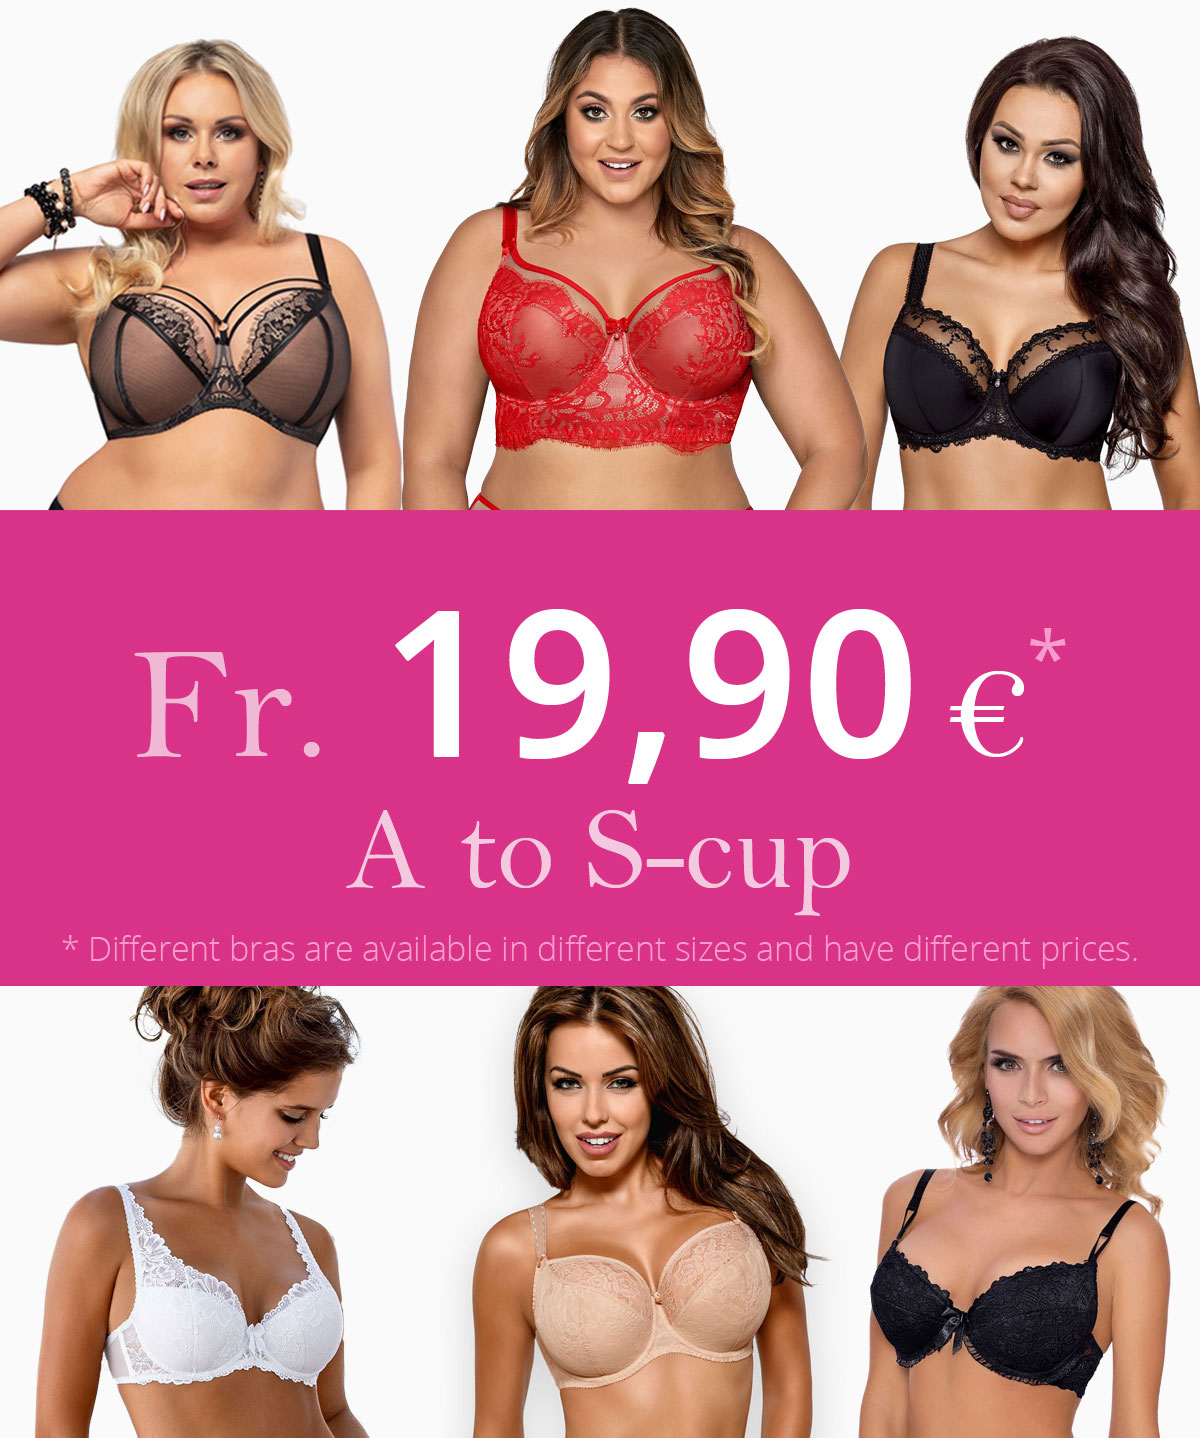 Beautiful, comfortable bras from $21.89 - A to S-cup